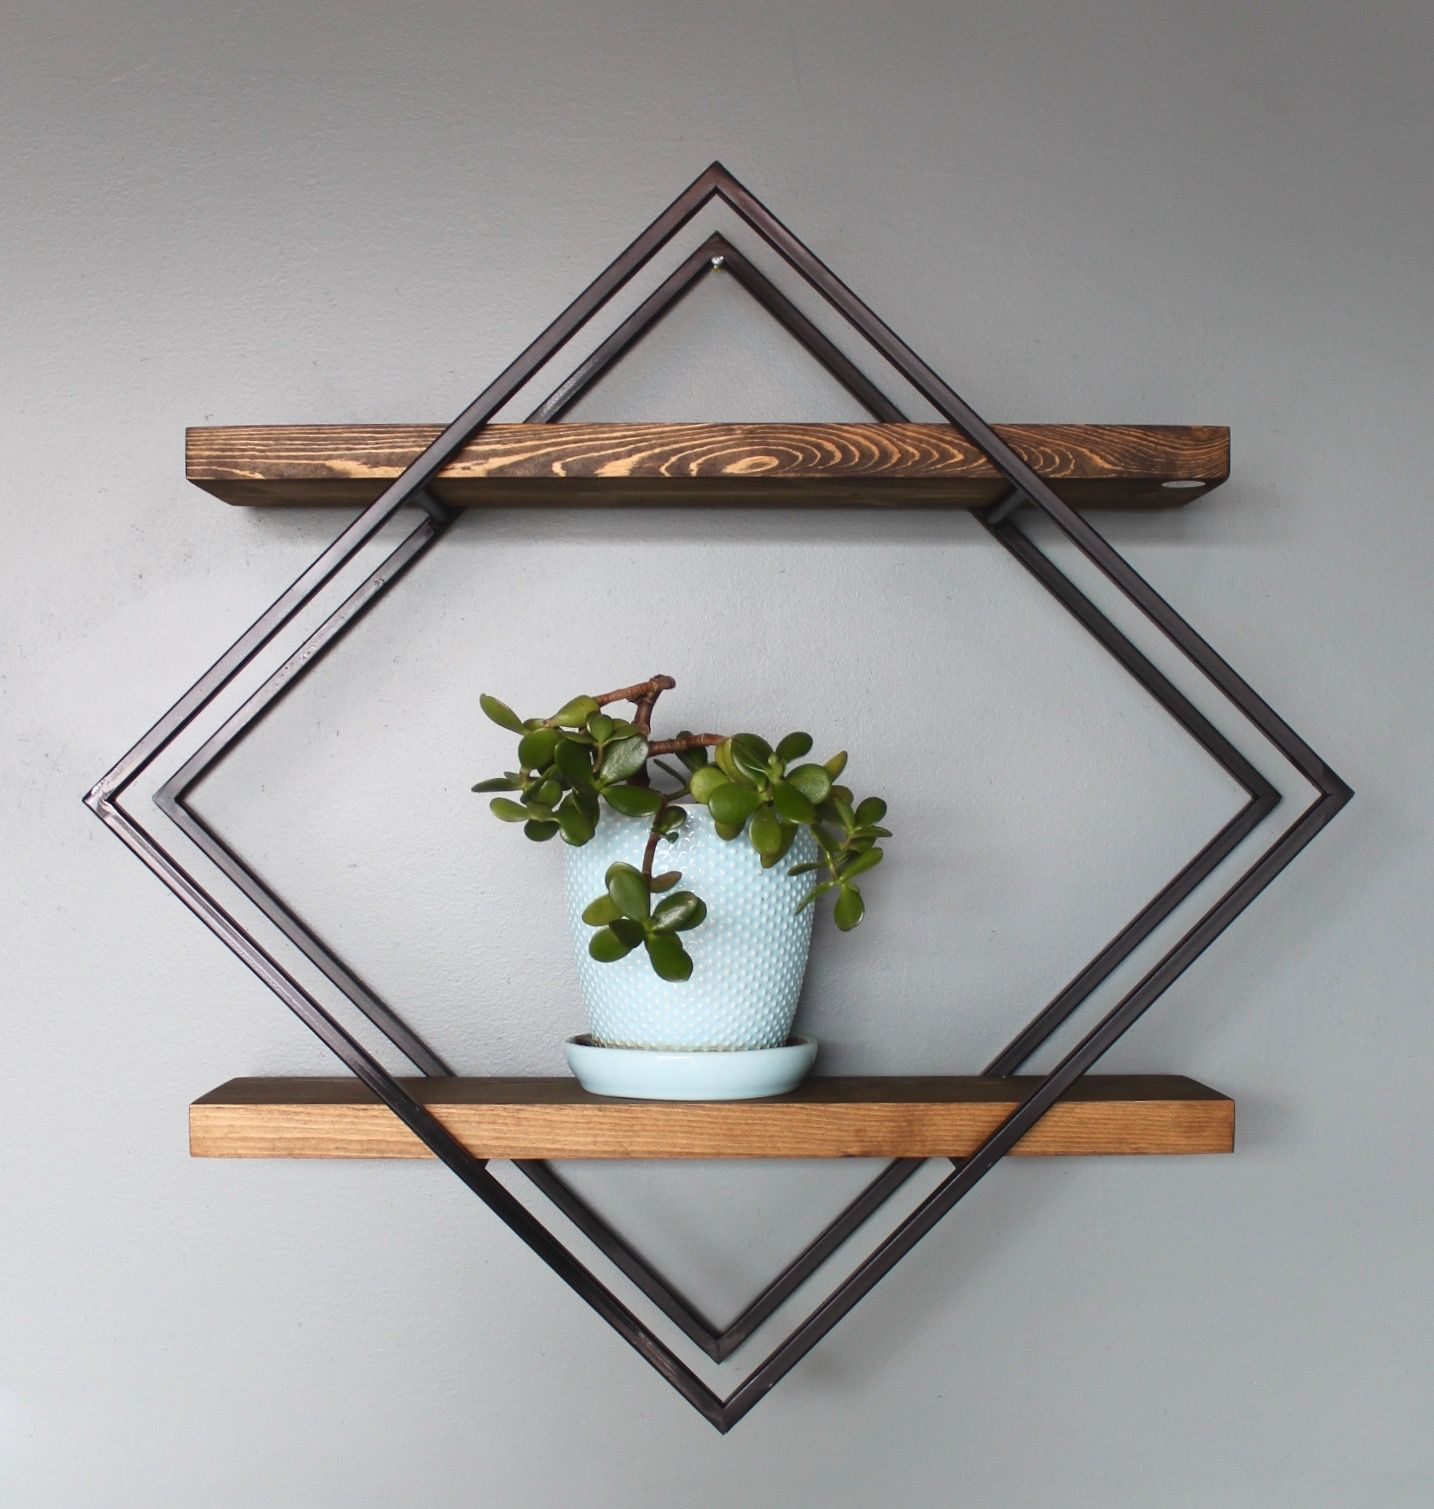 Diamond Shelves Long White Beard Furniture Geometric Shelves Modern Shelving Beautiful Wall Decor